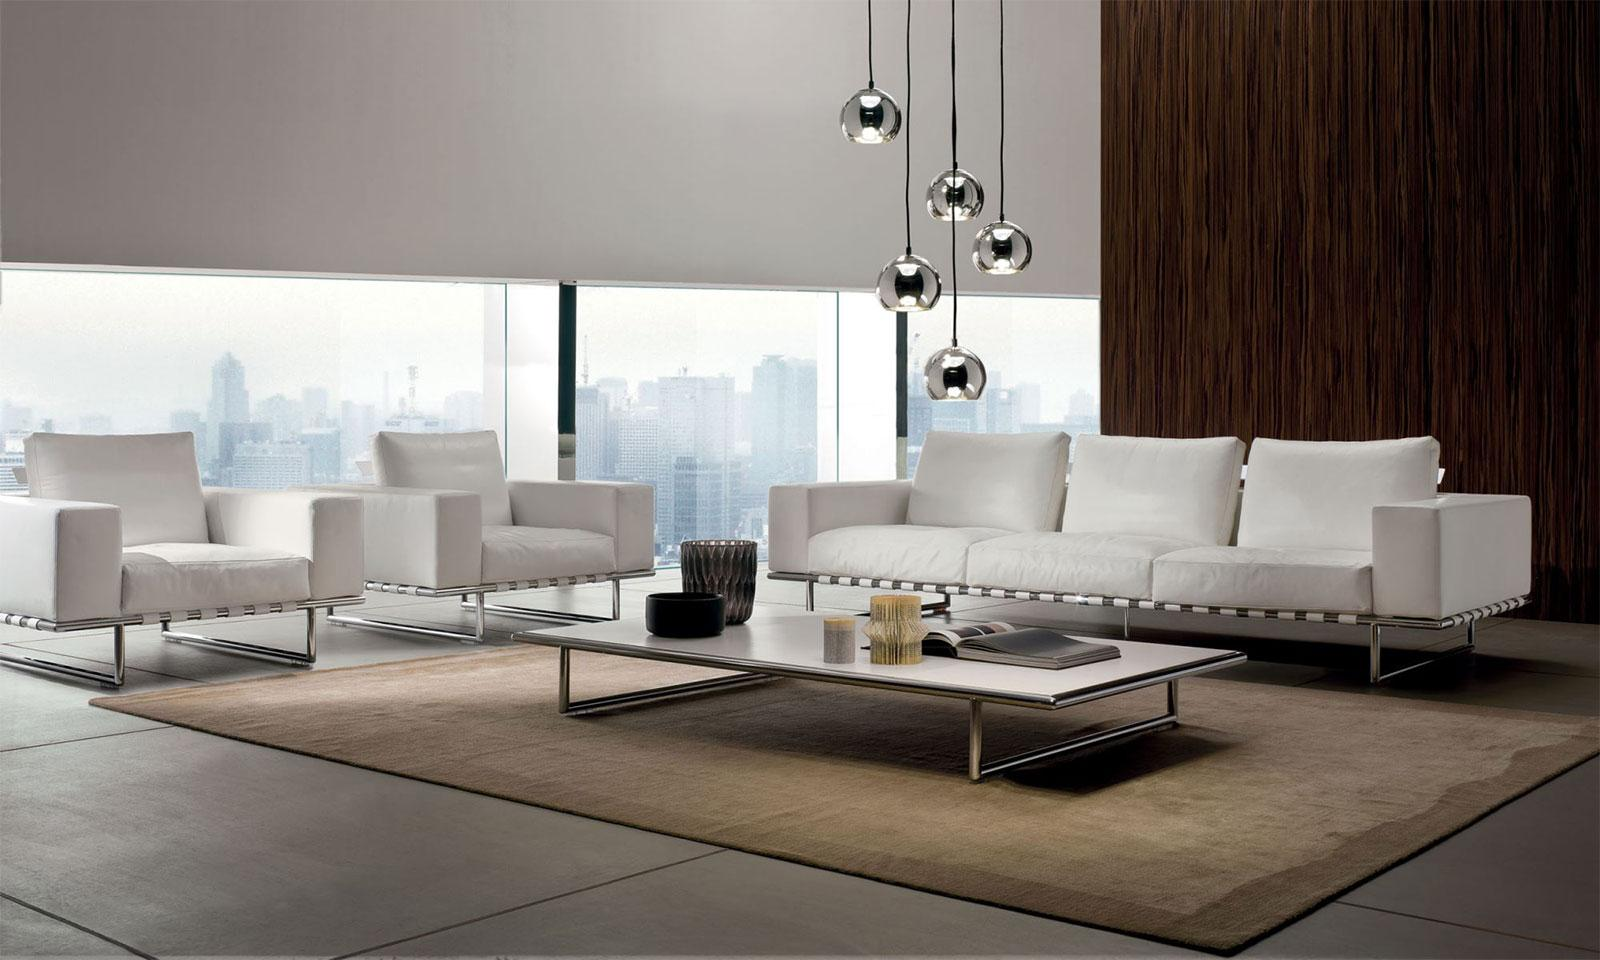 sofa delivery italia leather online yellow couch furniture stores shops design delivery sale home homestore house manufacturers quality retailers websites